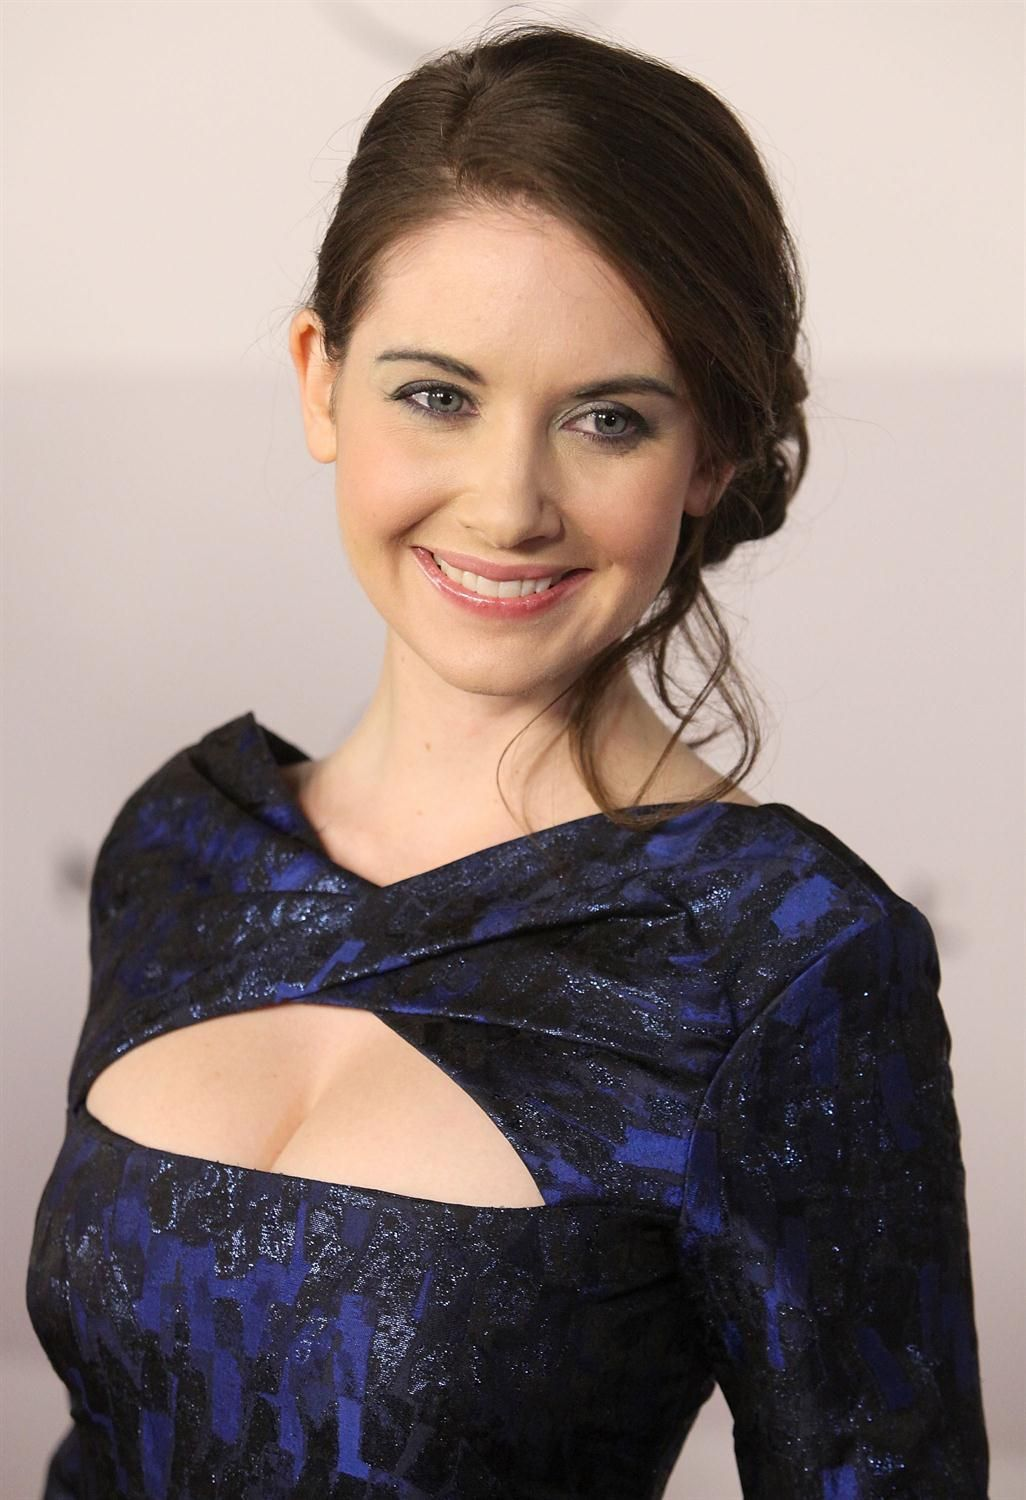 Best Quality Pictures of Alison Brie